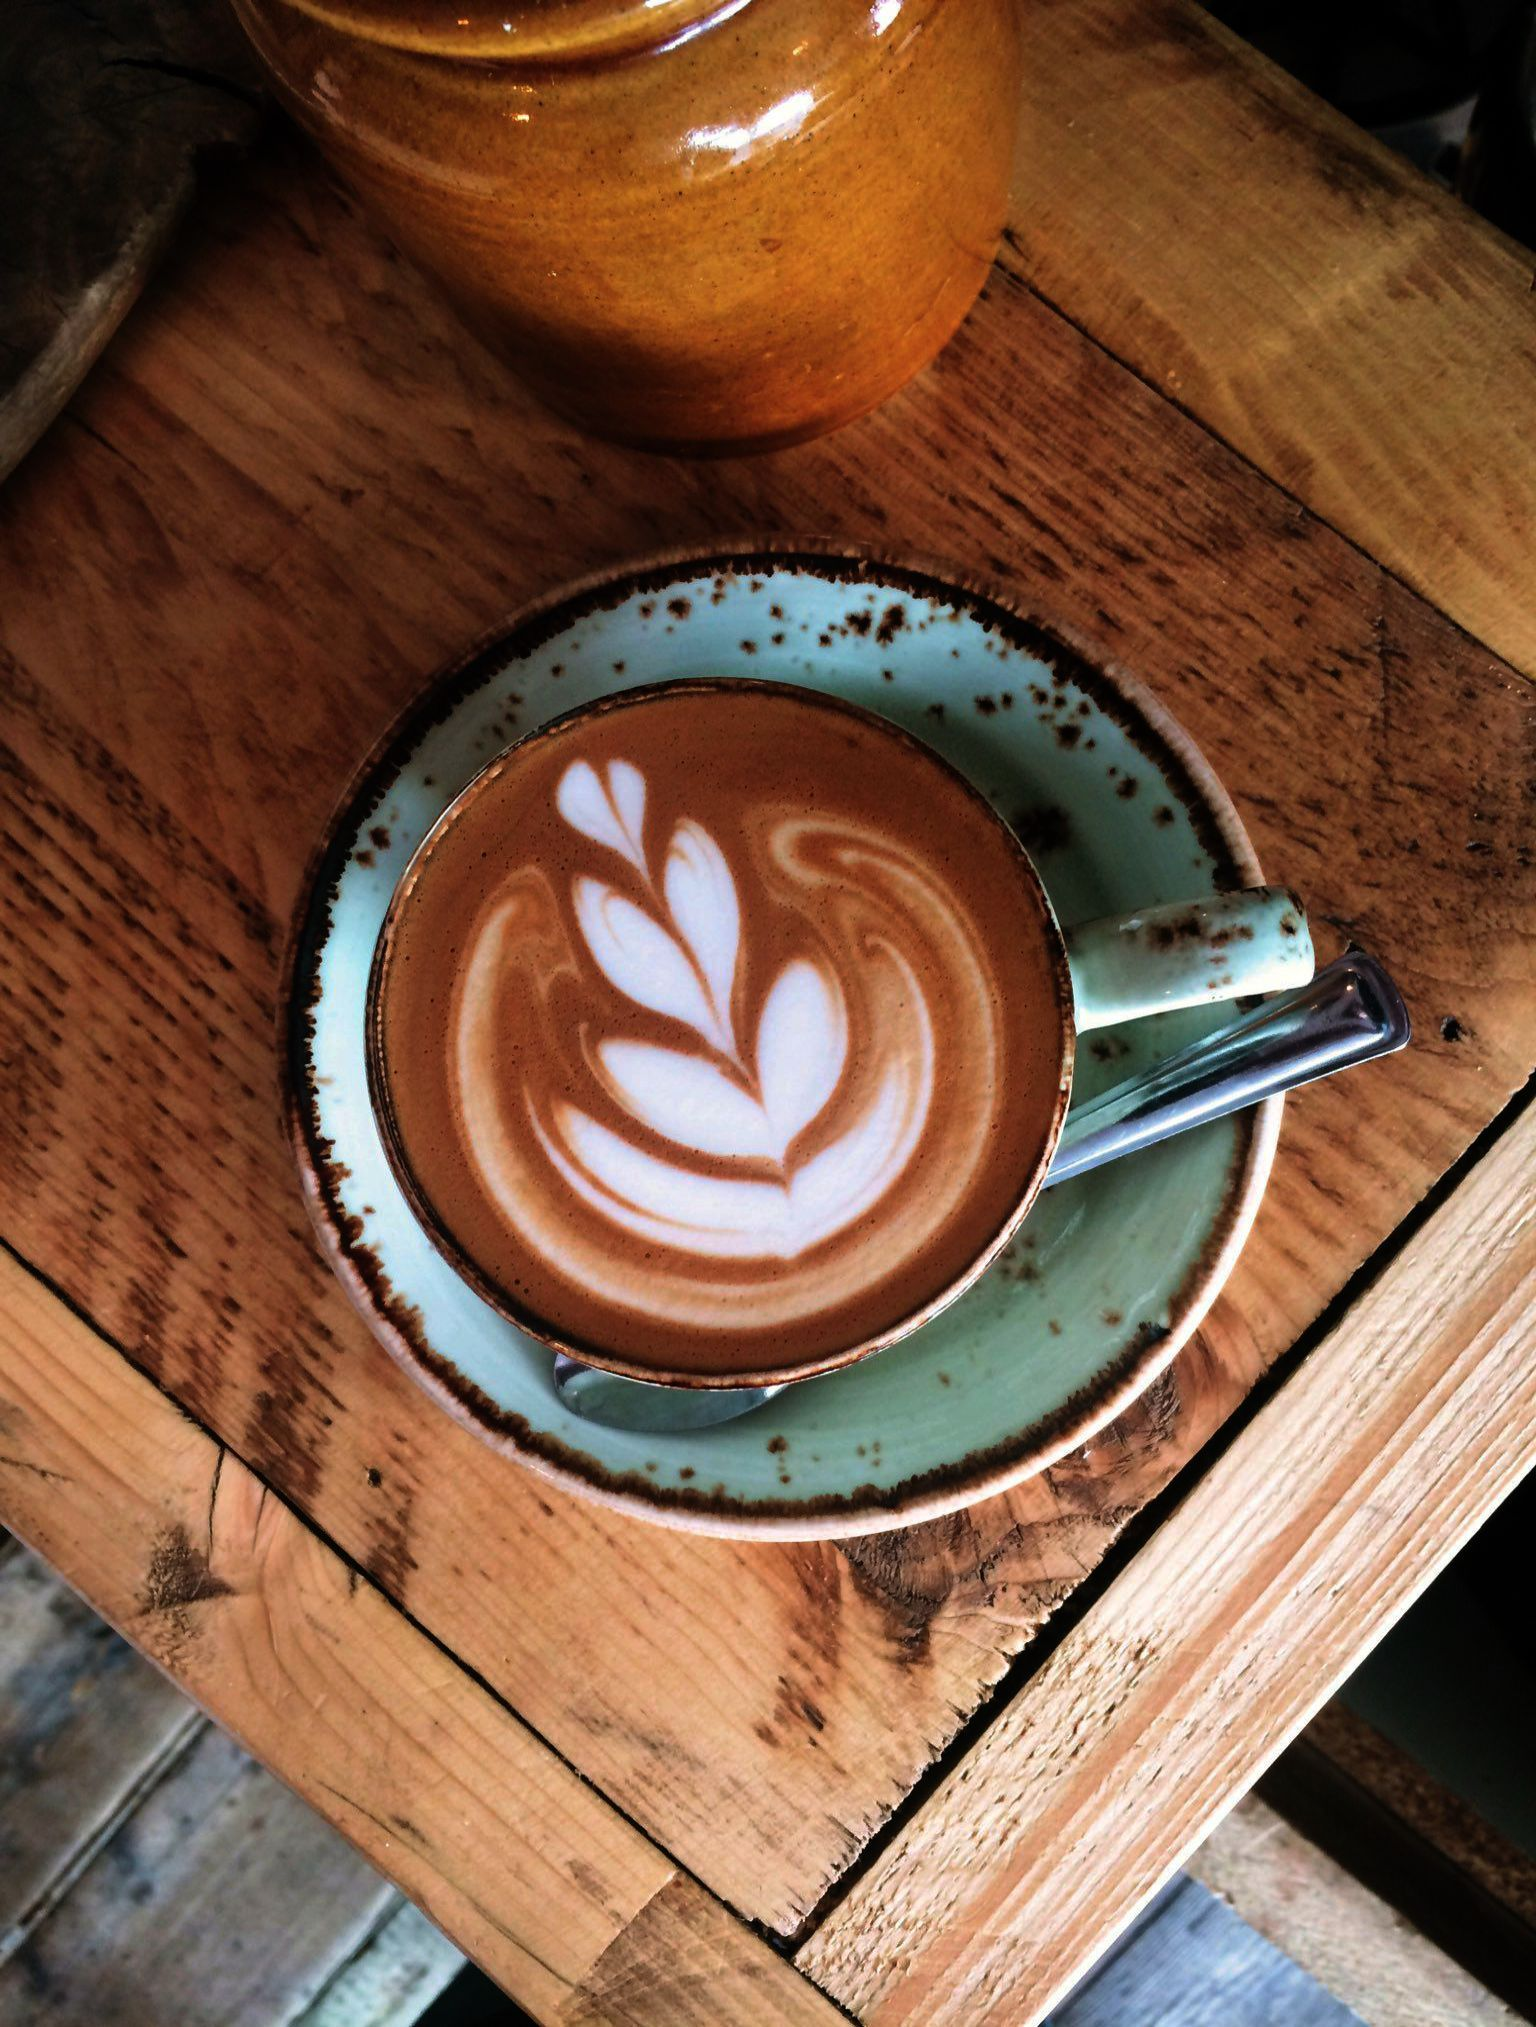 Coffee Shops Near Emory Many Chocolate Coffee Cake Picture This Coffee Time Animated Gif Coffee Near Me Knoxville Tn Coffee Jars Best Coffee Coffee Latte Art